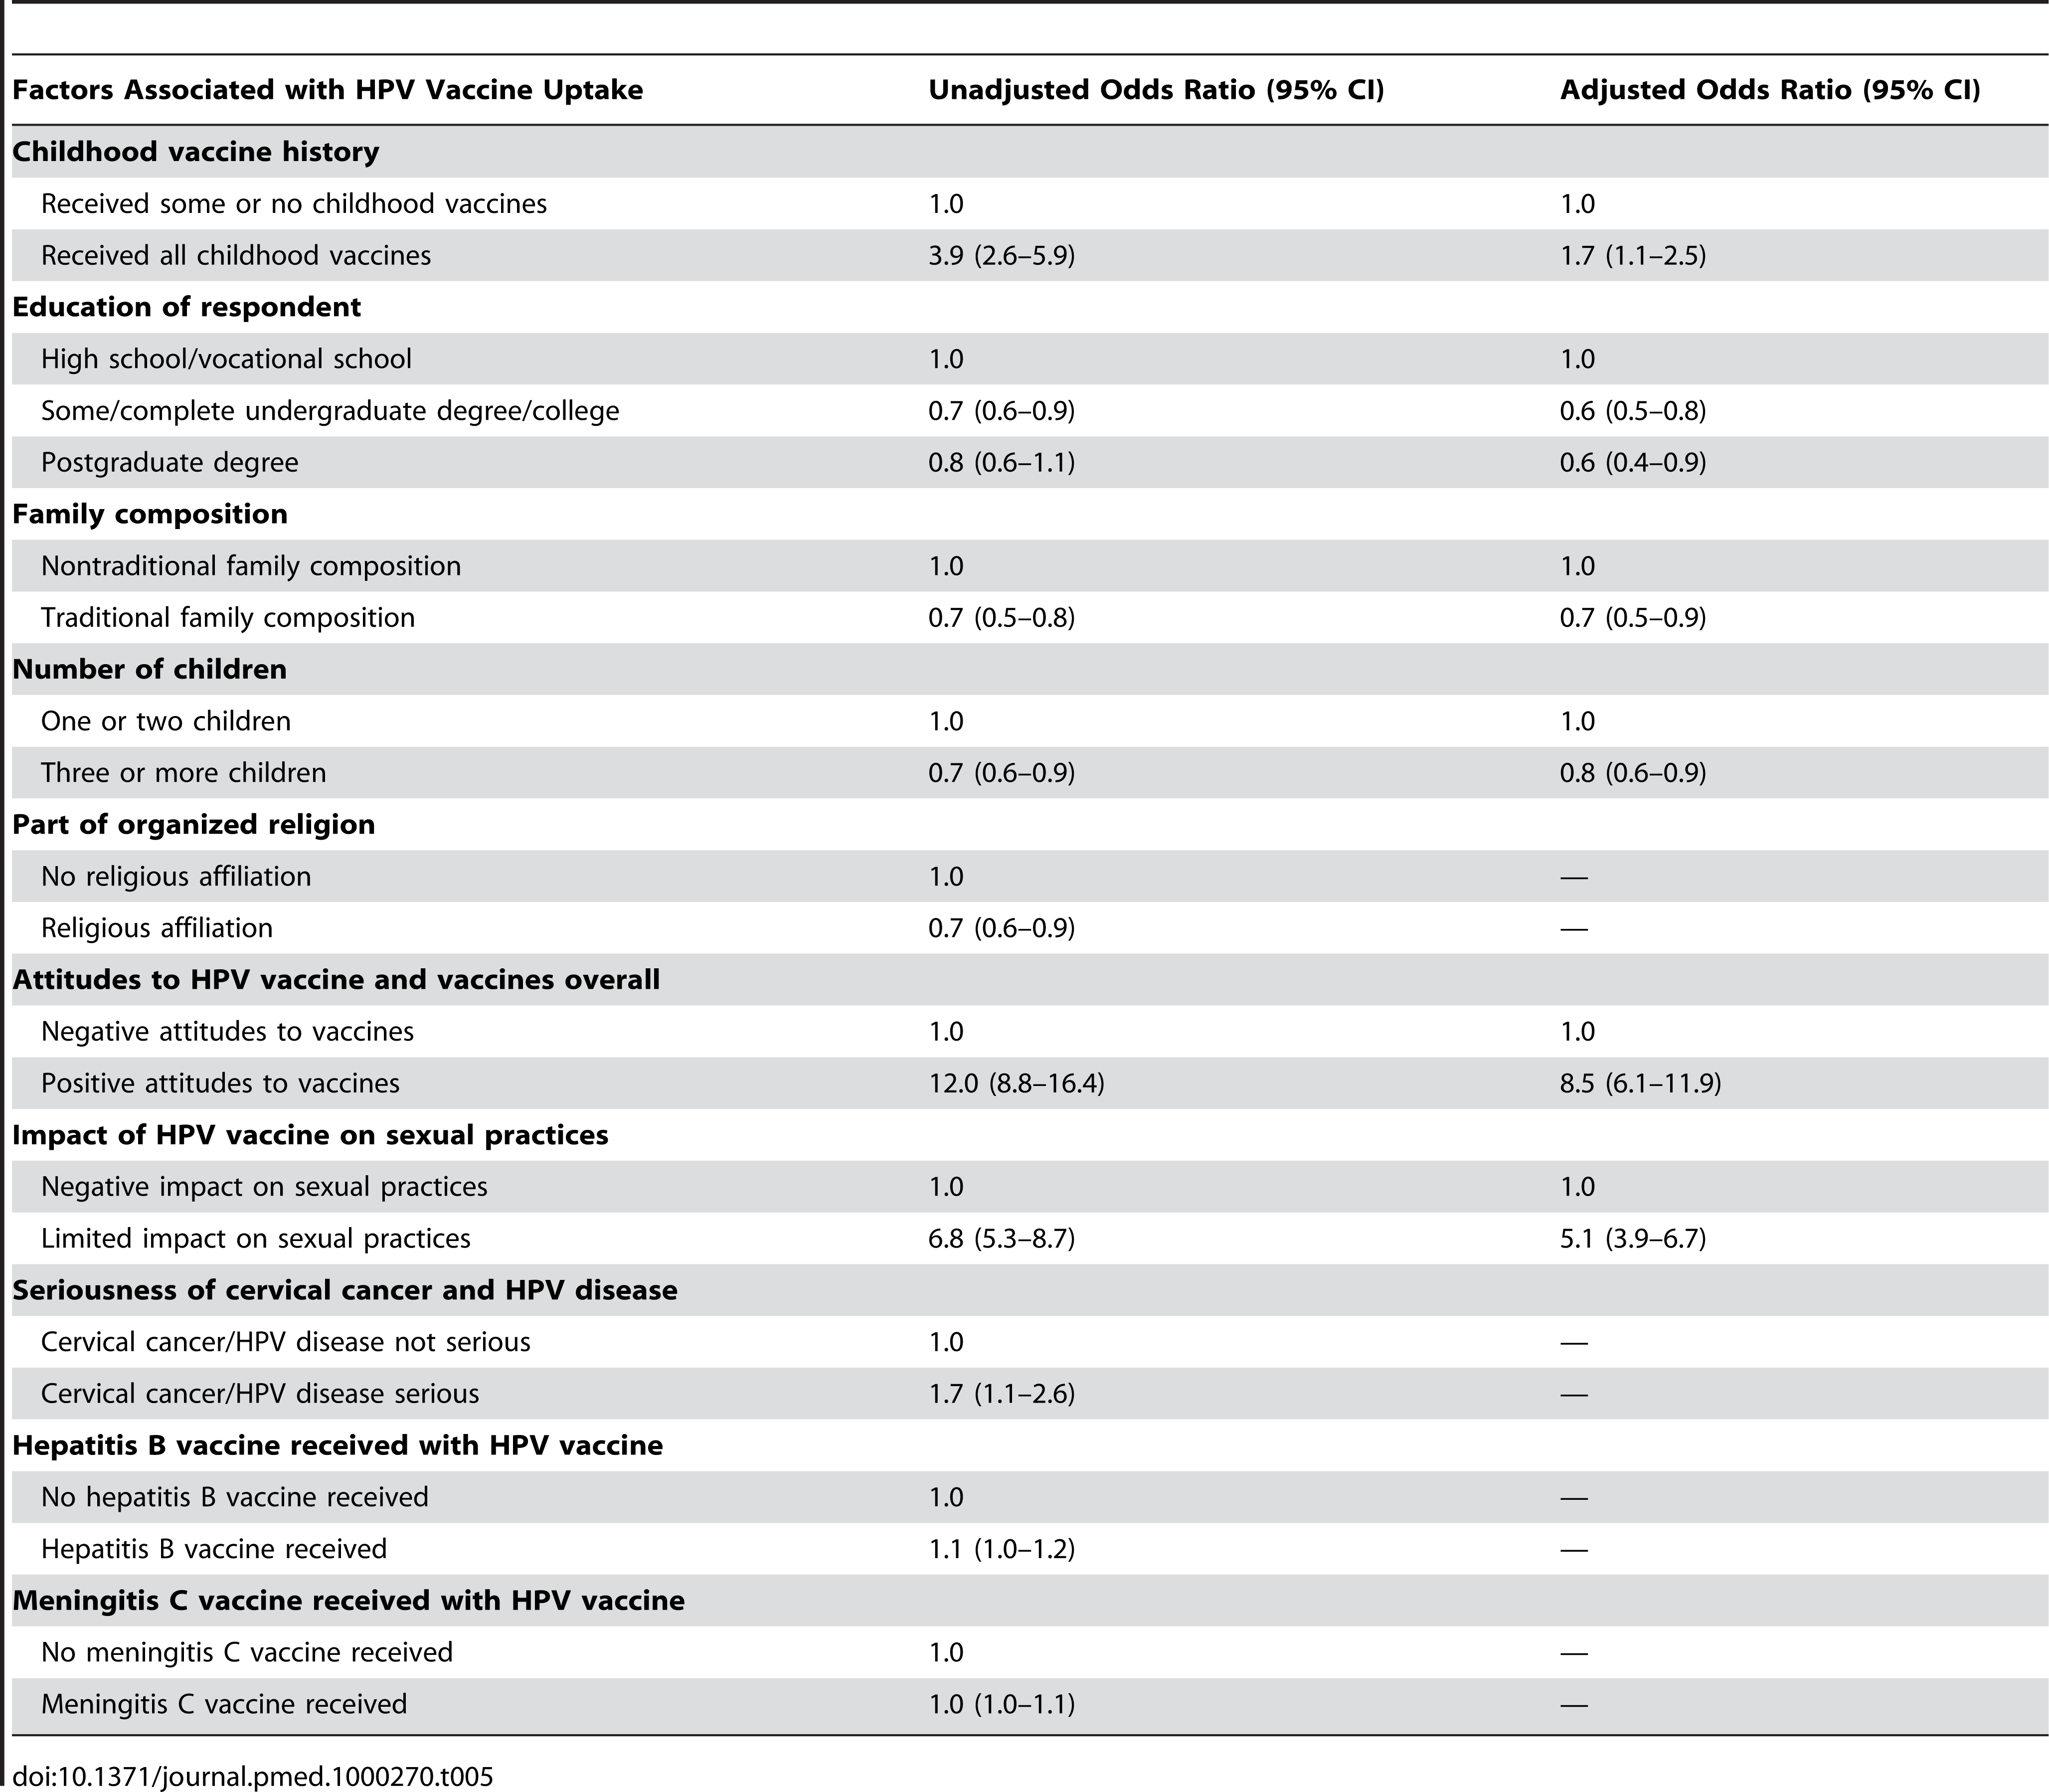 Multivariate analysis of factors associated with parents' decision to have daughters receive the HPV vaccine in a publicly funded HPV vaccine program.